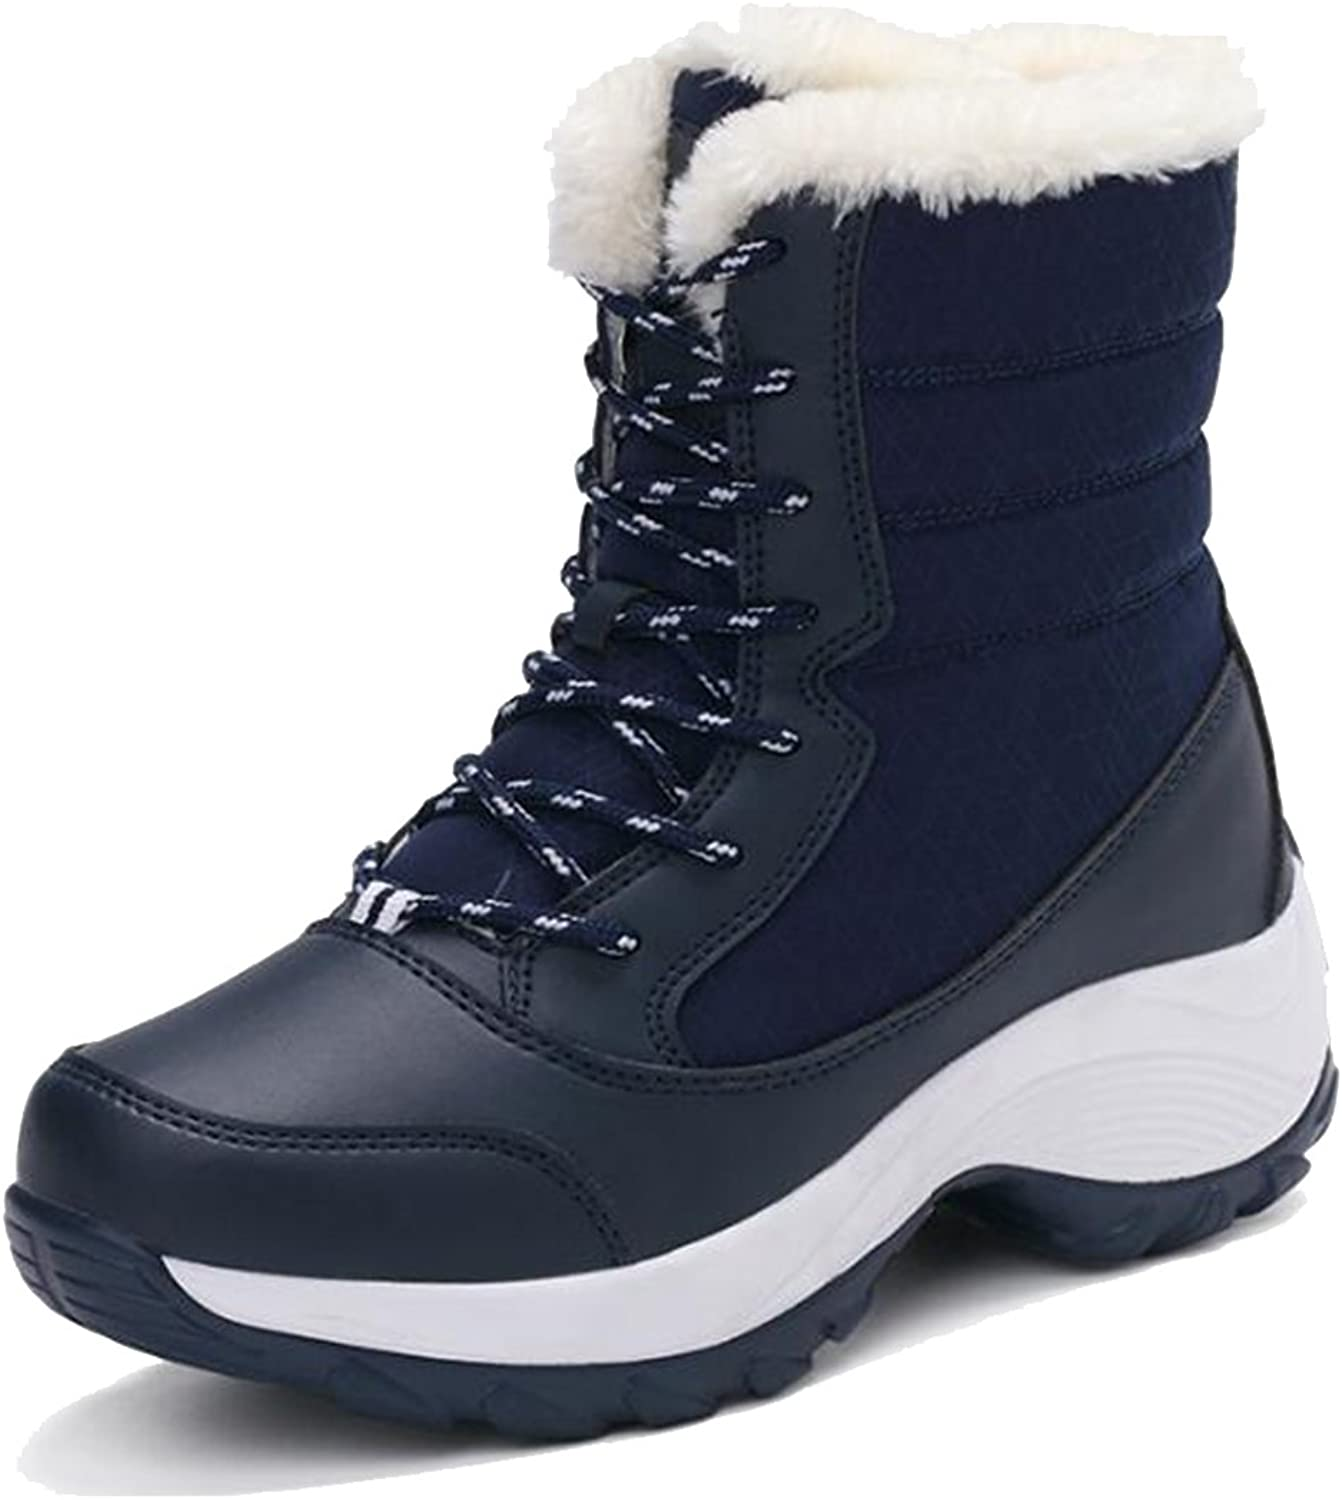 COVOYYAR Women's Lace Up Warm Fur Snow Boots Wedge Heel Winter shoes